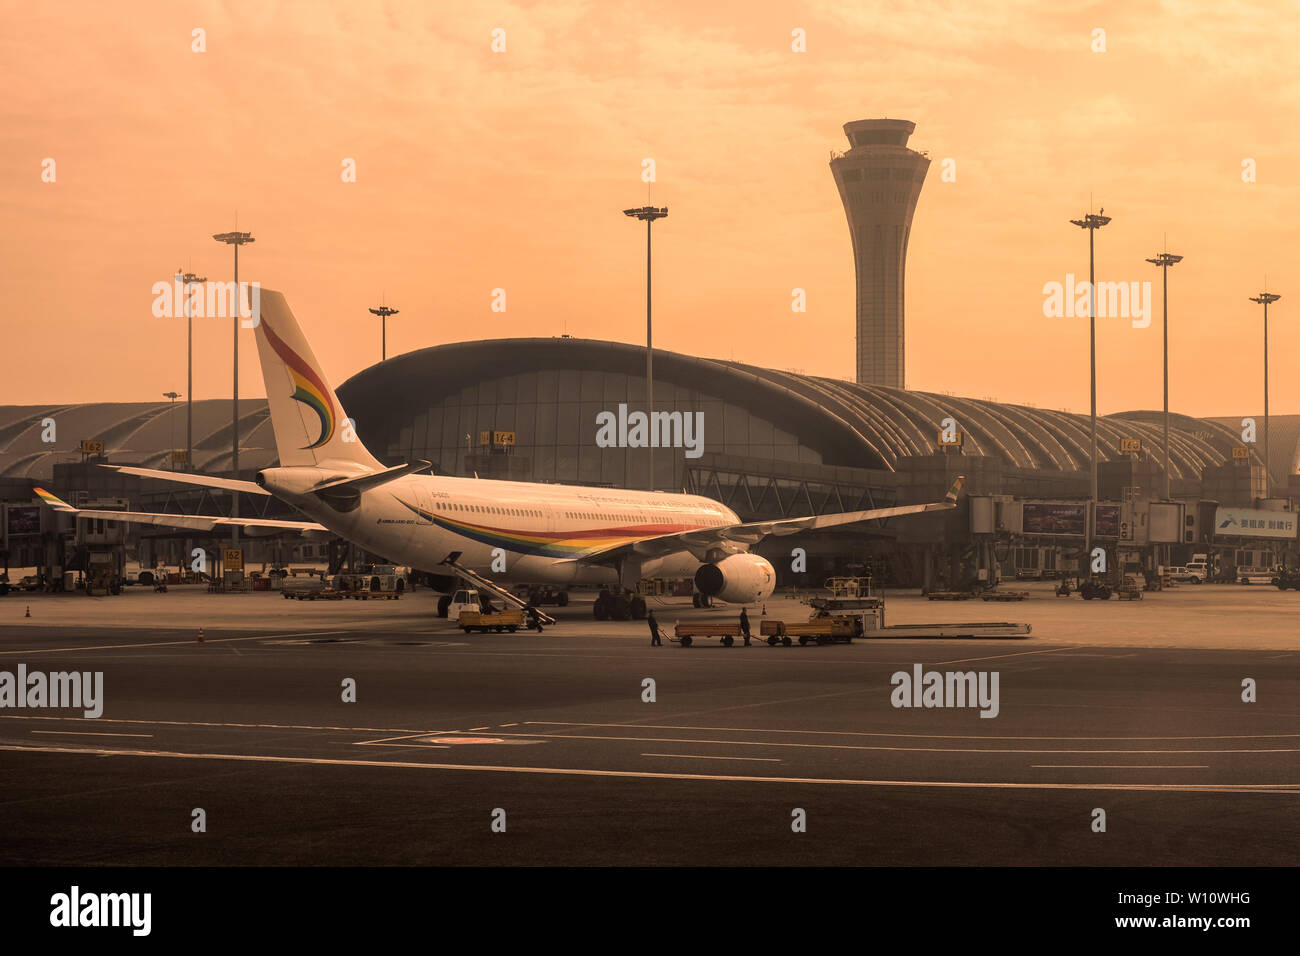 Chengdu, China - Oct 25 2018 : Arrival flight in morning at Chengdu Shuangliu International Airport - Stock Image